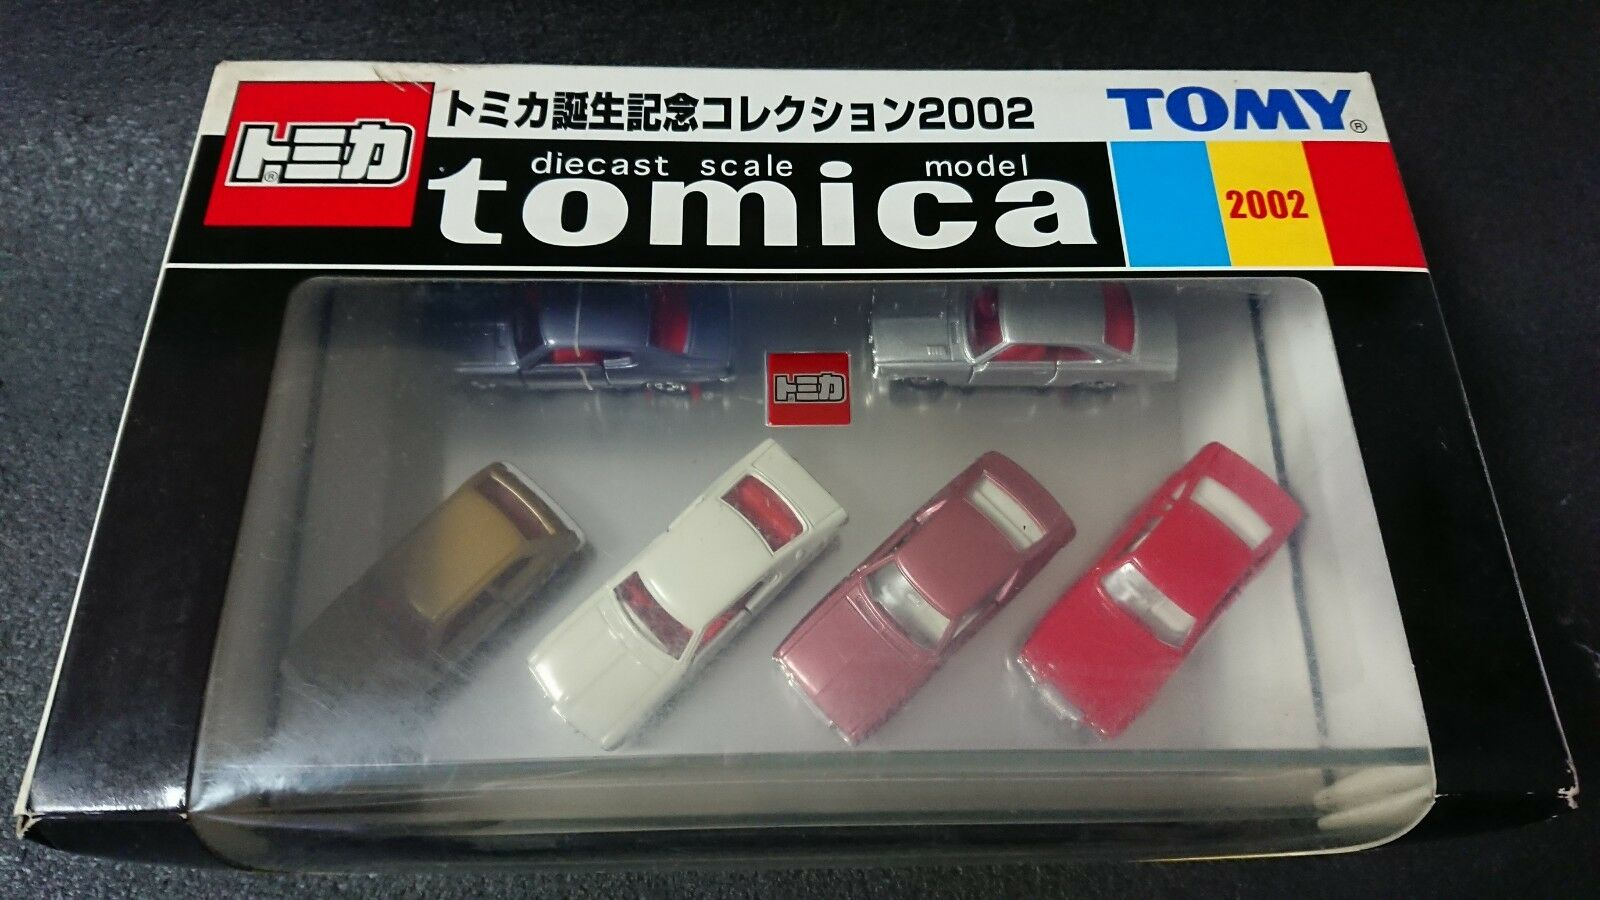 TOMICA Birth Memorial Collection 2002' TOMY Japan Diecast Scale Model